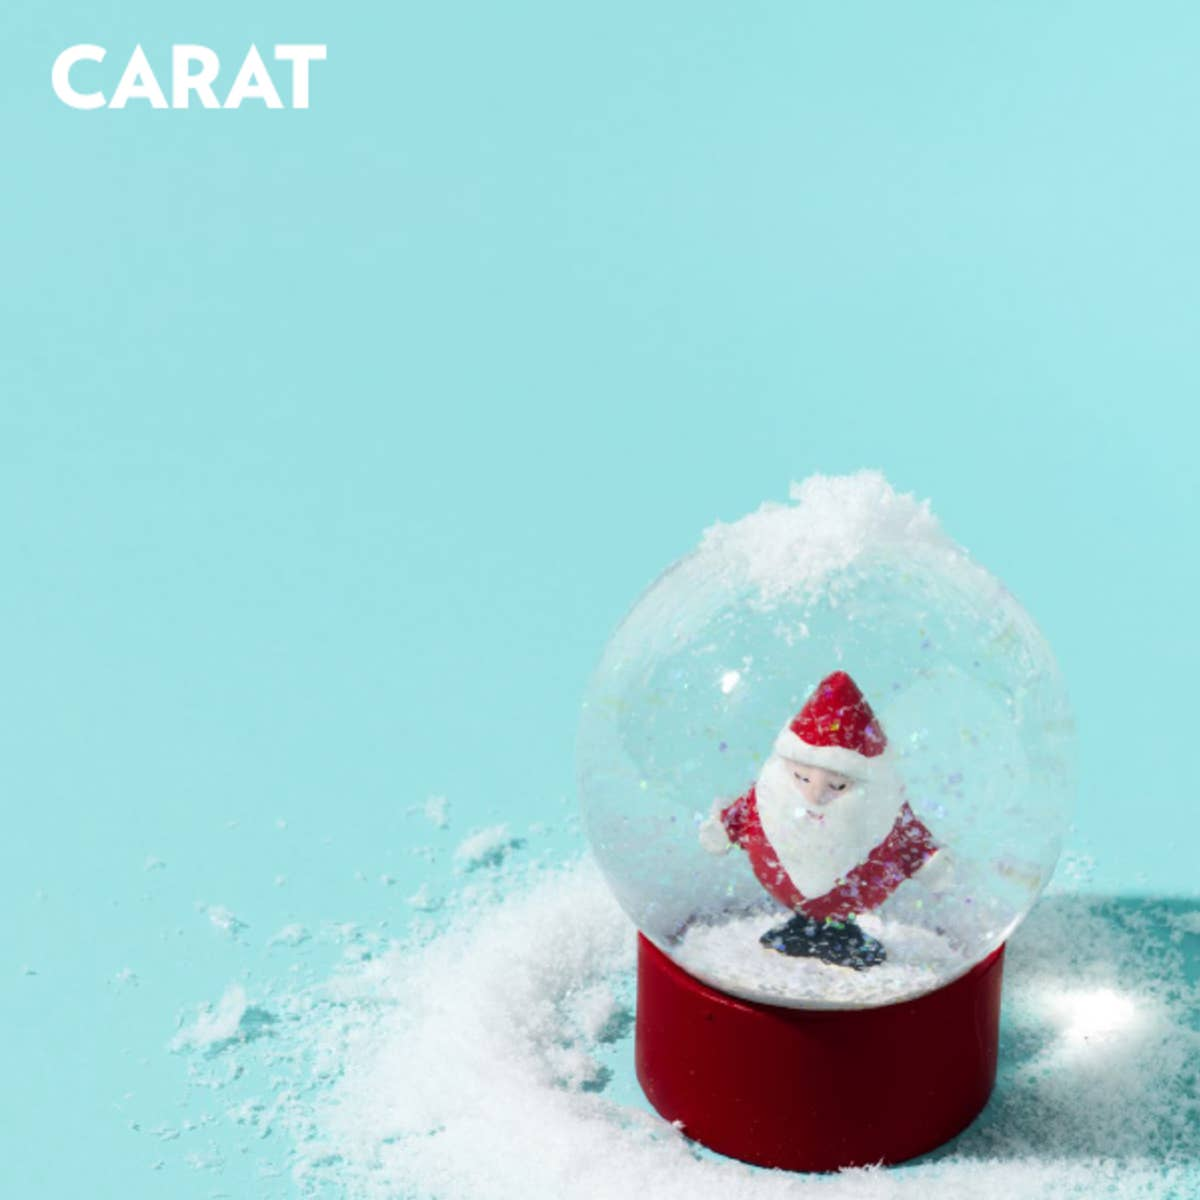 A Christmas list from Carat